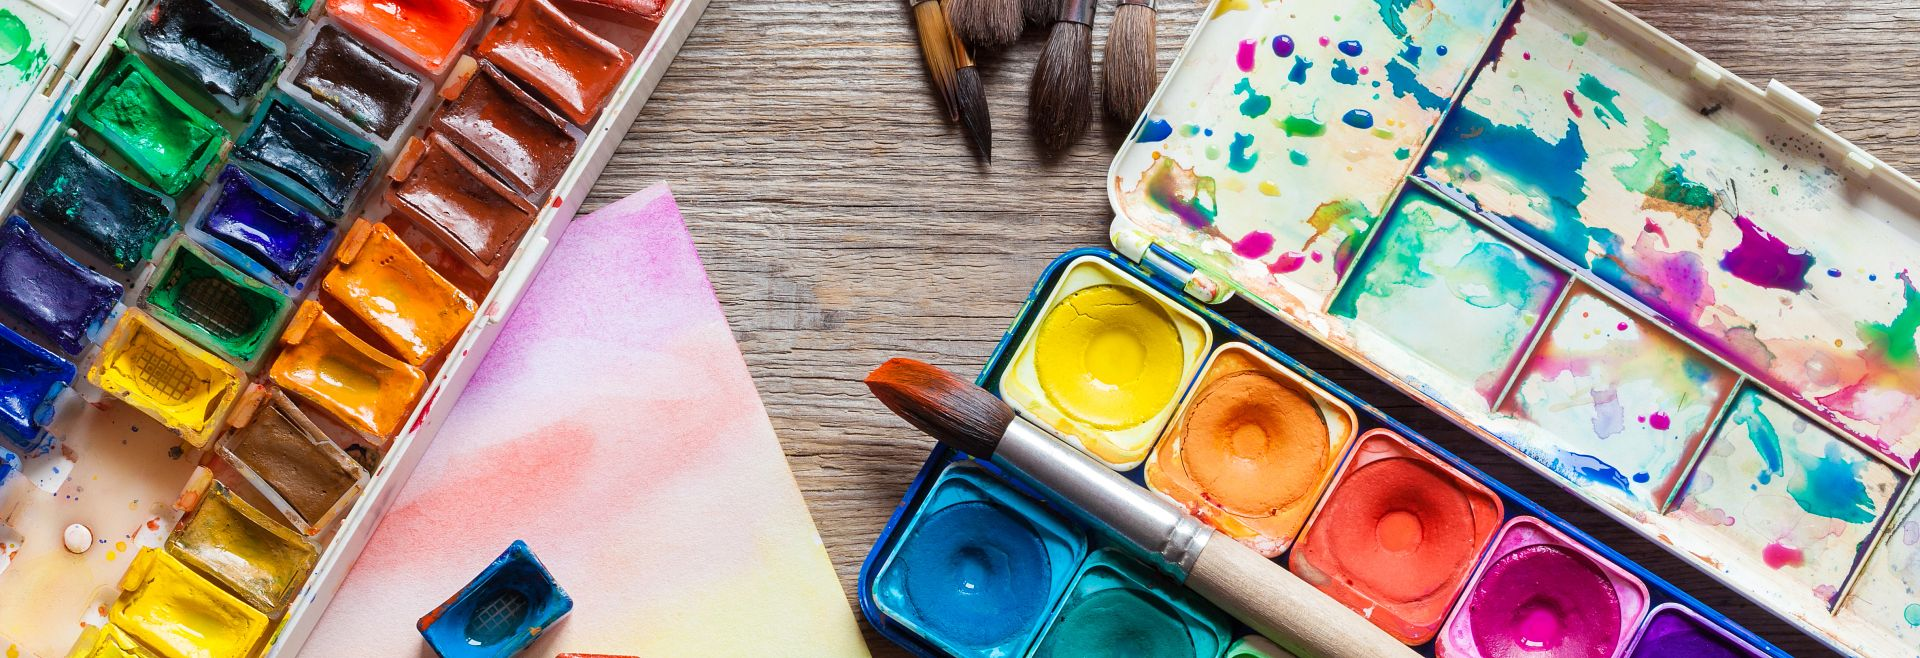 Watercolors Paints Brushes Art Getty Images